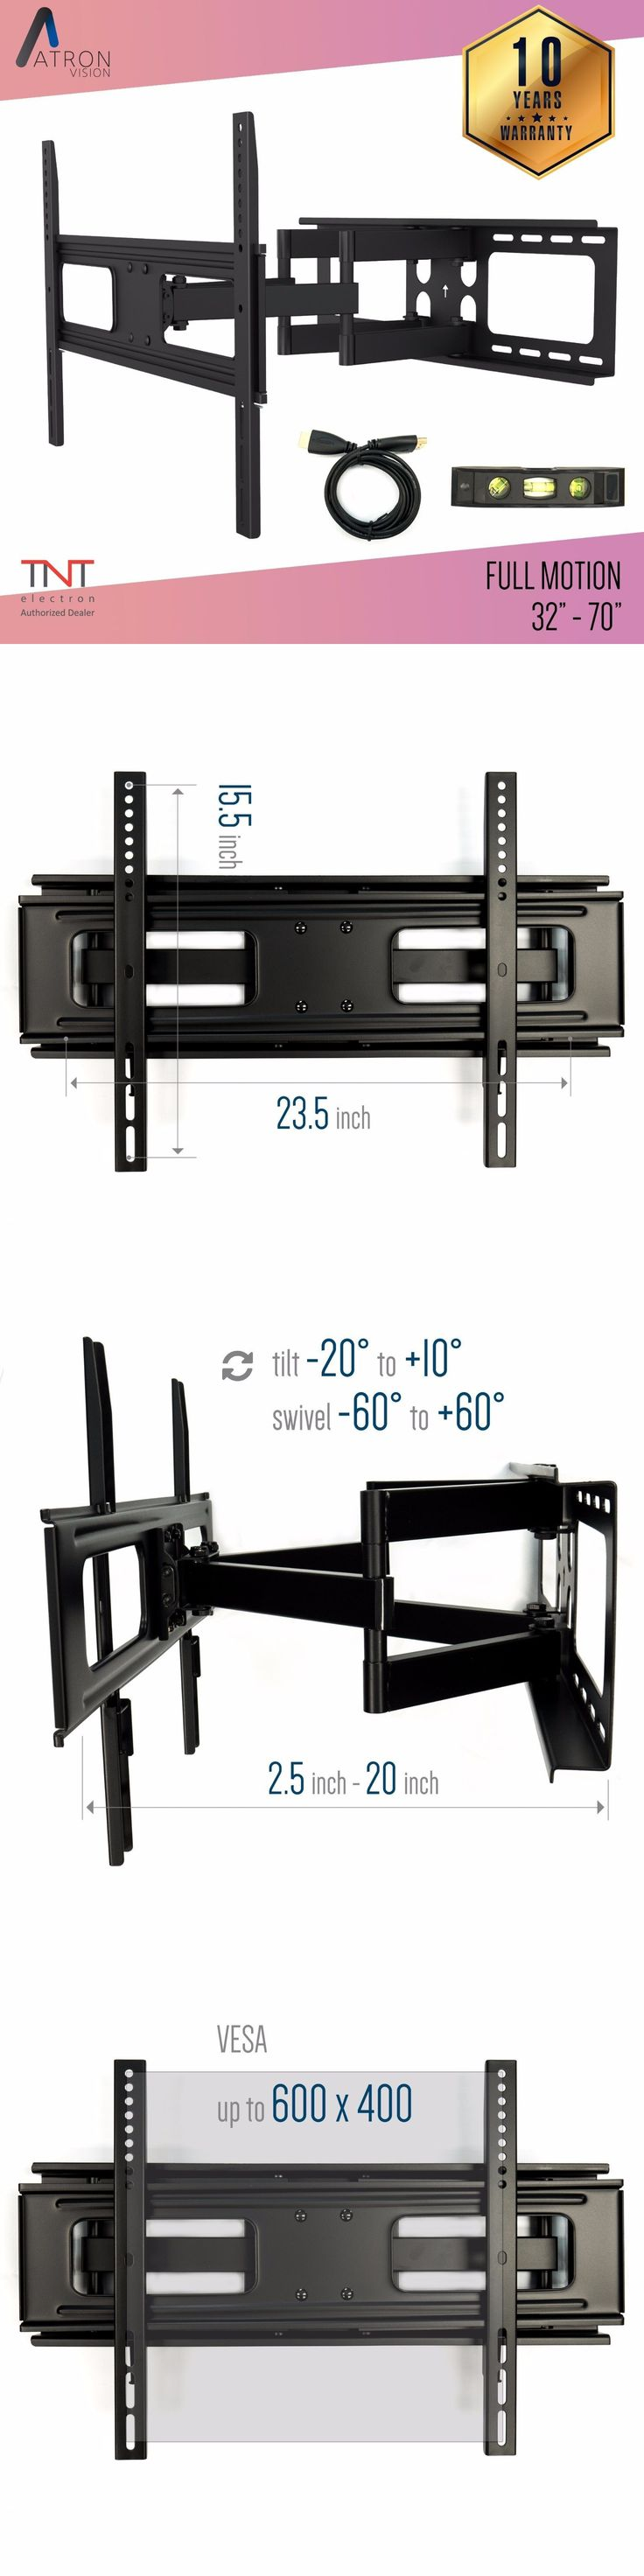 TV Mounts and Brackets: Dual Arm Full Motion Tilt Lcd Led Tv Wall Mount Bracket 42 46 50 55 60 65 70 -> BUY IT NOW ONLY: $67.99 on eBay!